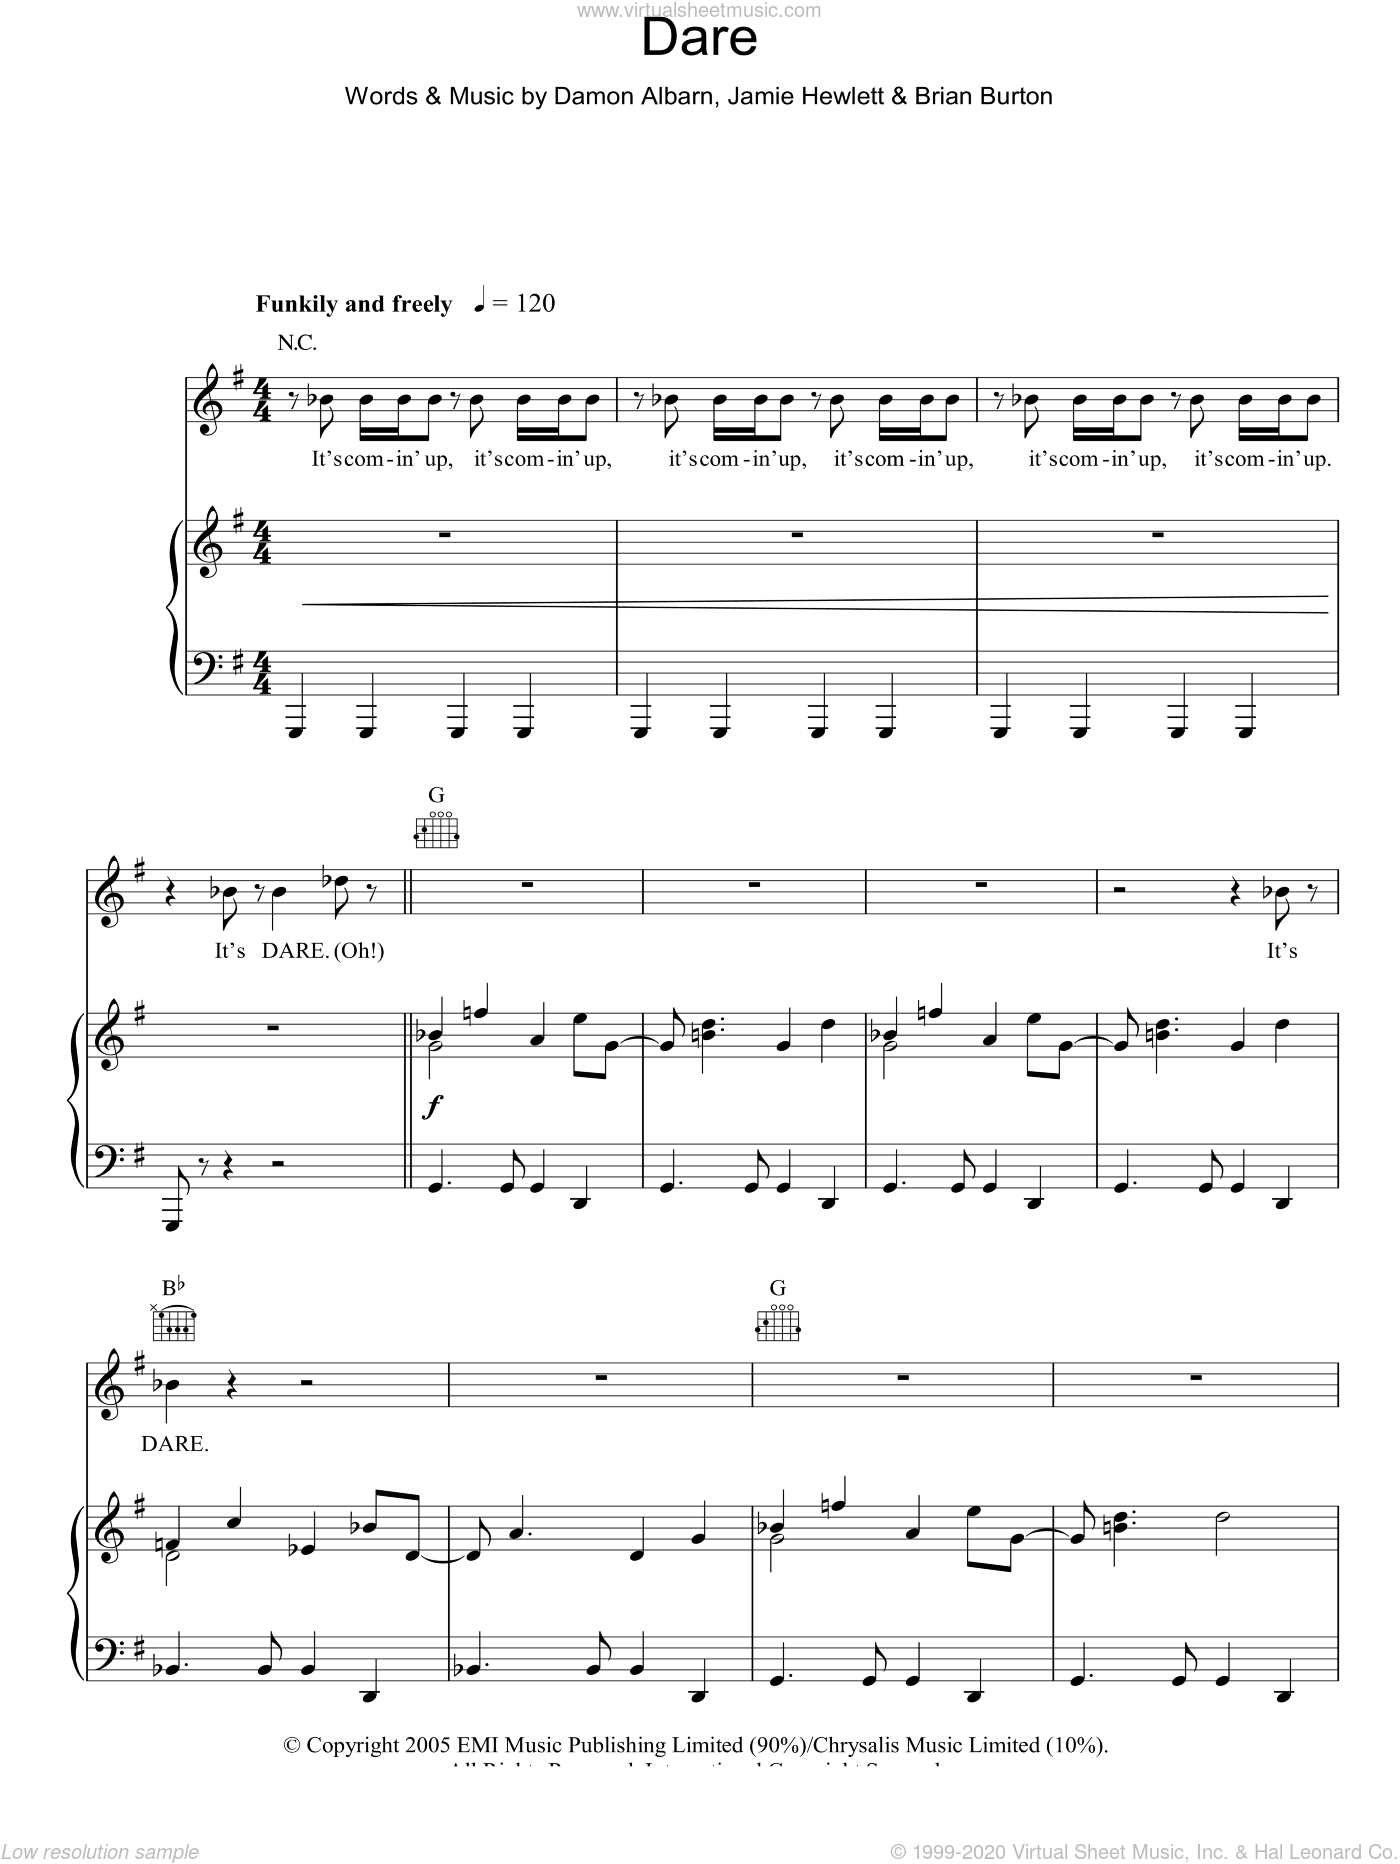 Dare sheet music for voice, piano or guitar by Brian Burton